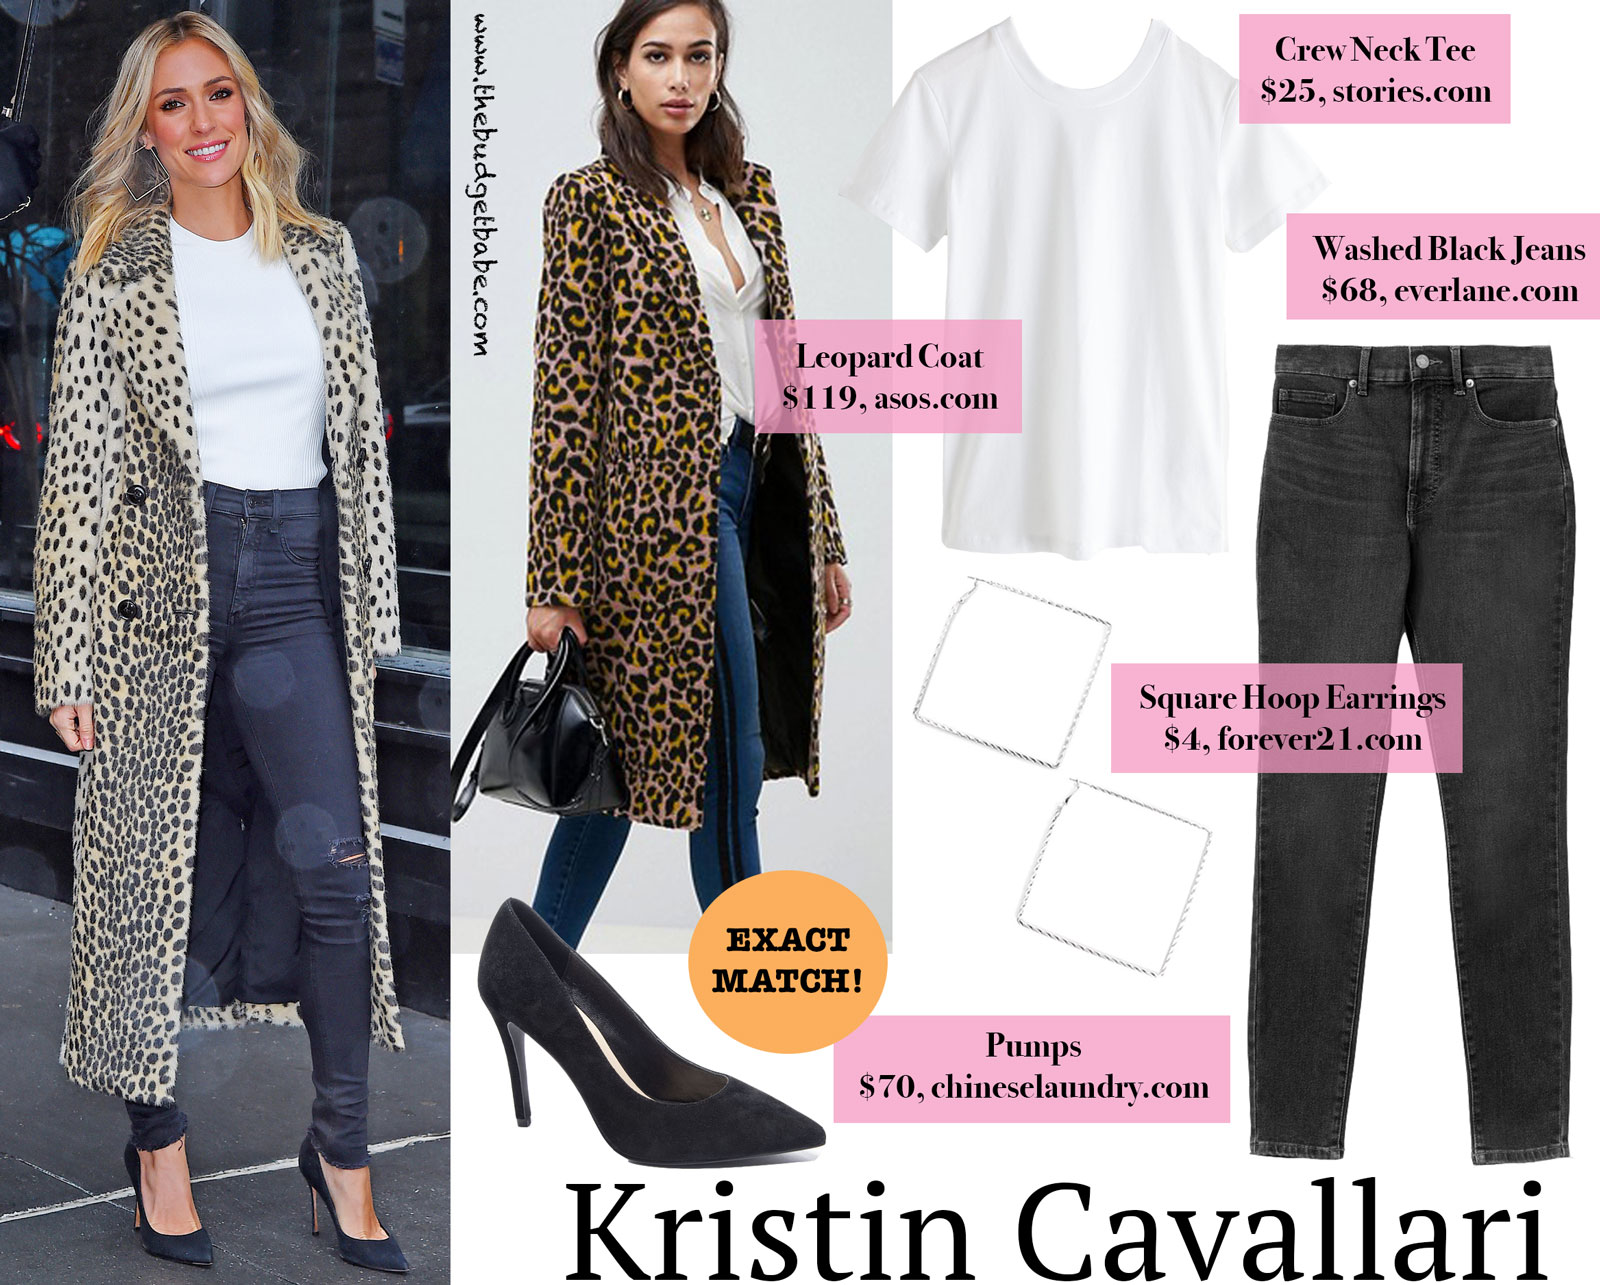 Kristin Cavallari Leopard Coat and Square Earrings Look for Less